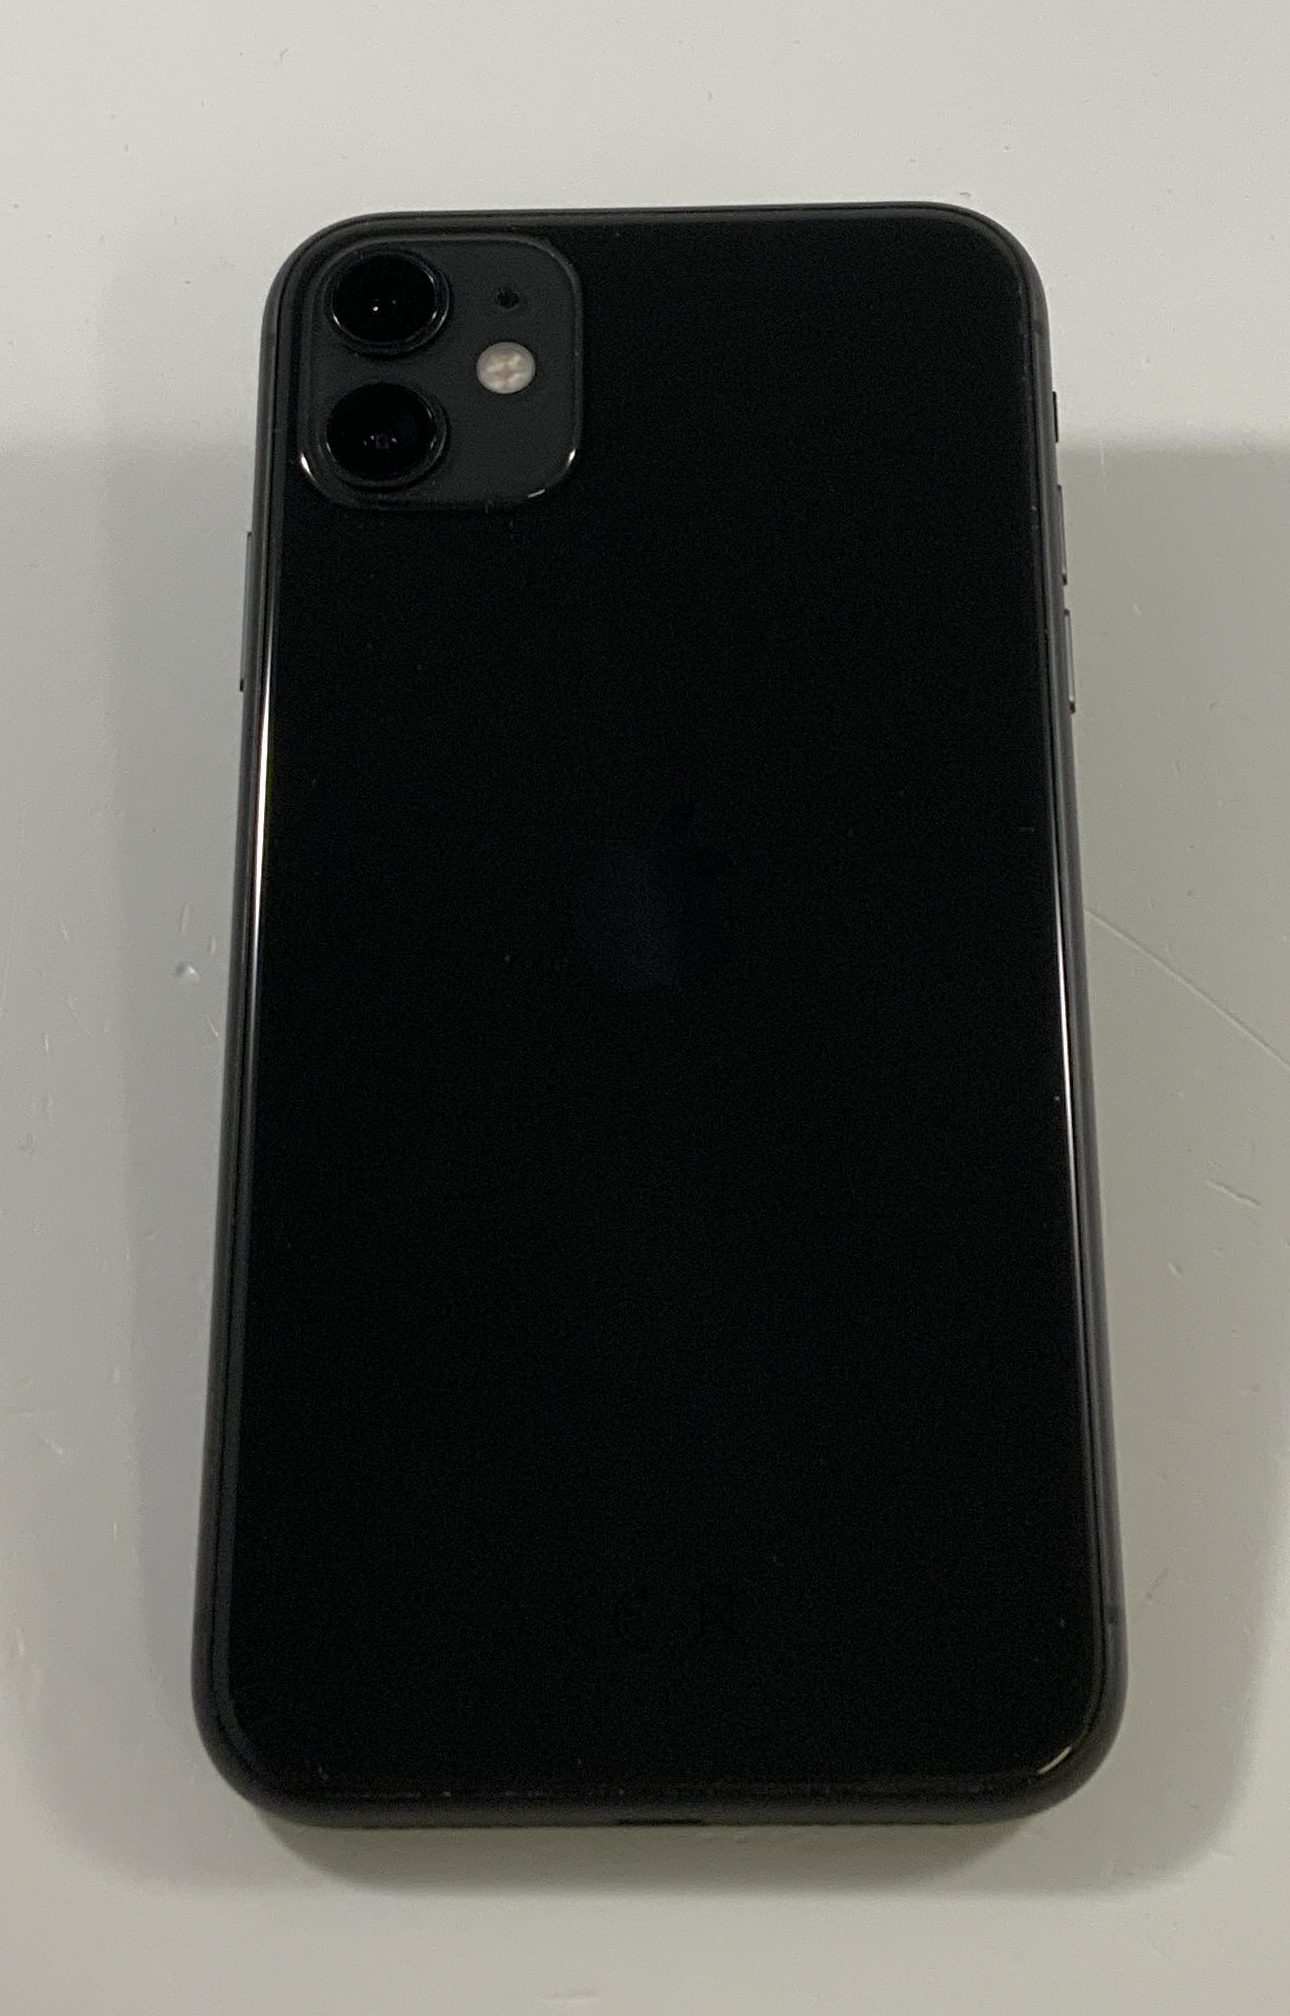 iPhone 11 64GB, 64GB, Black, Afbeelding 2